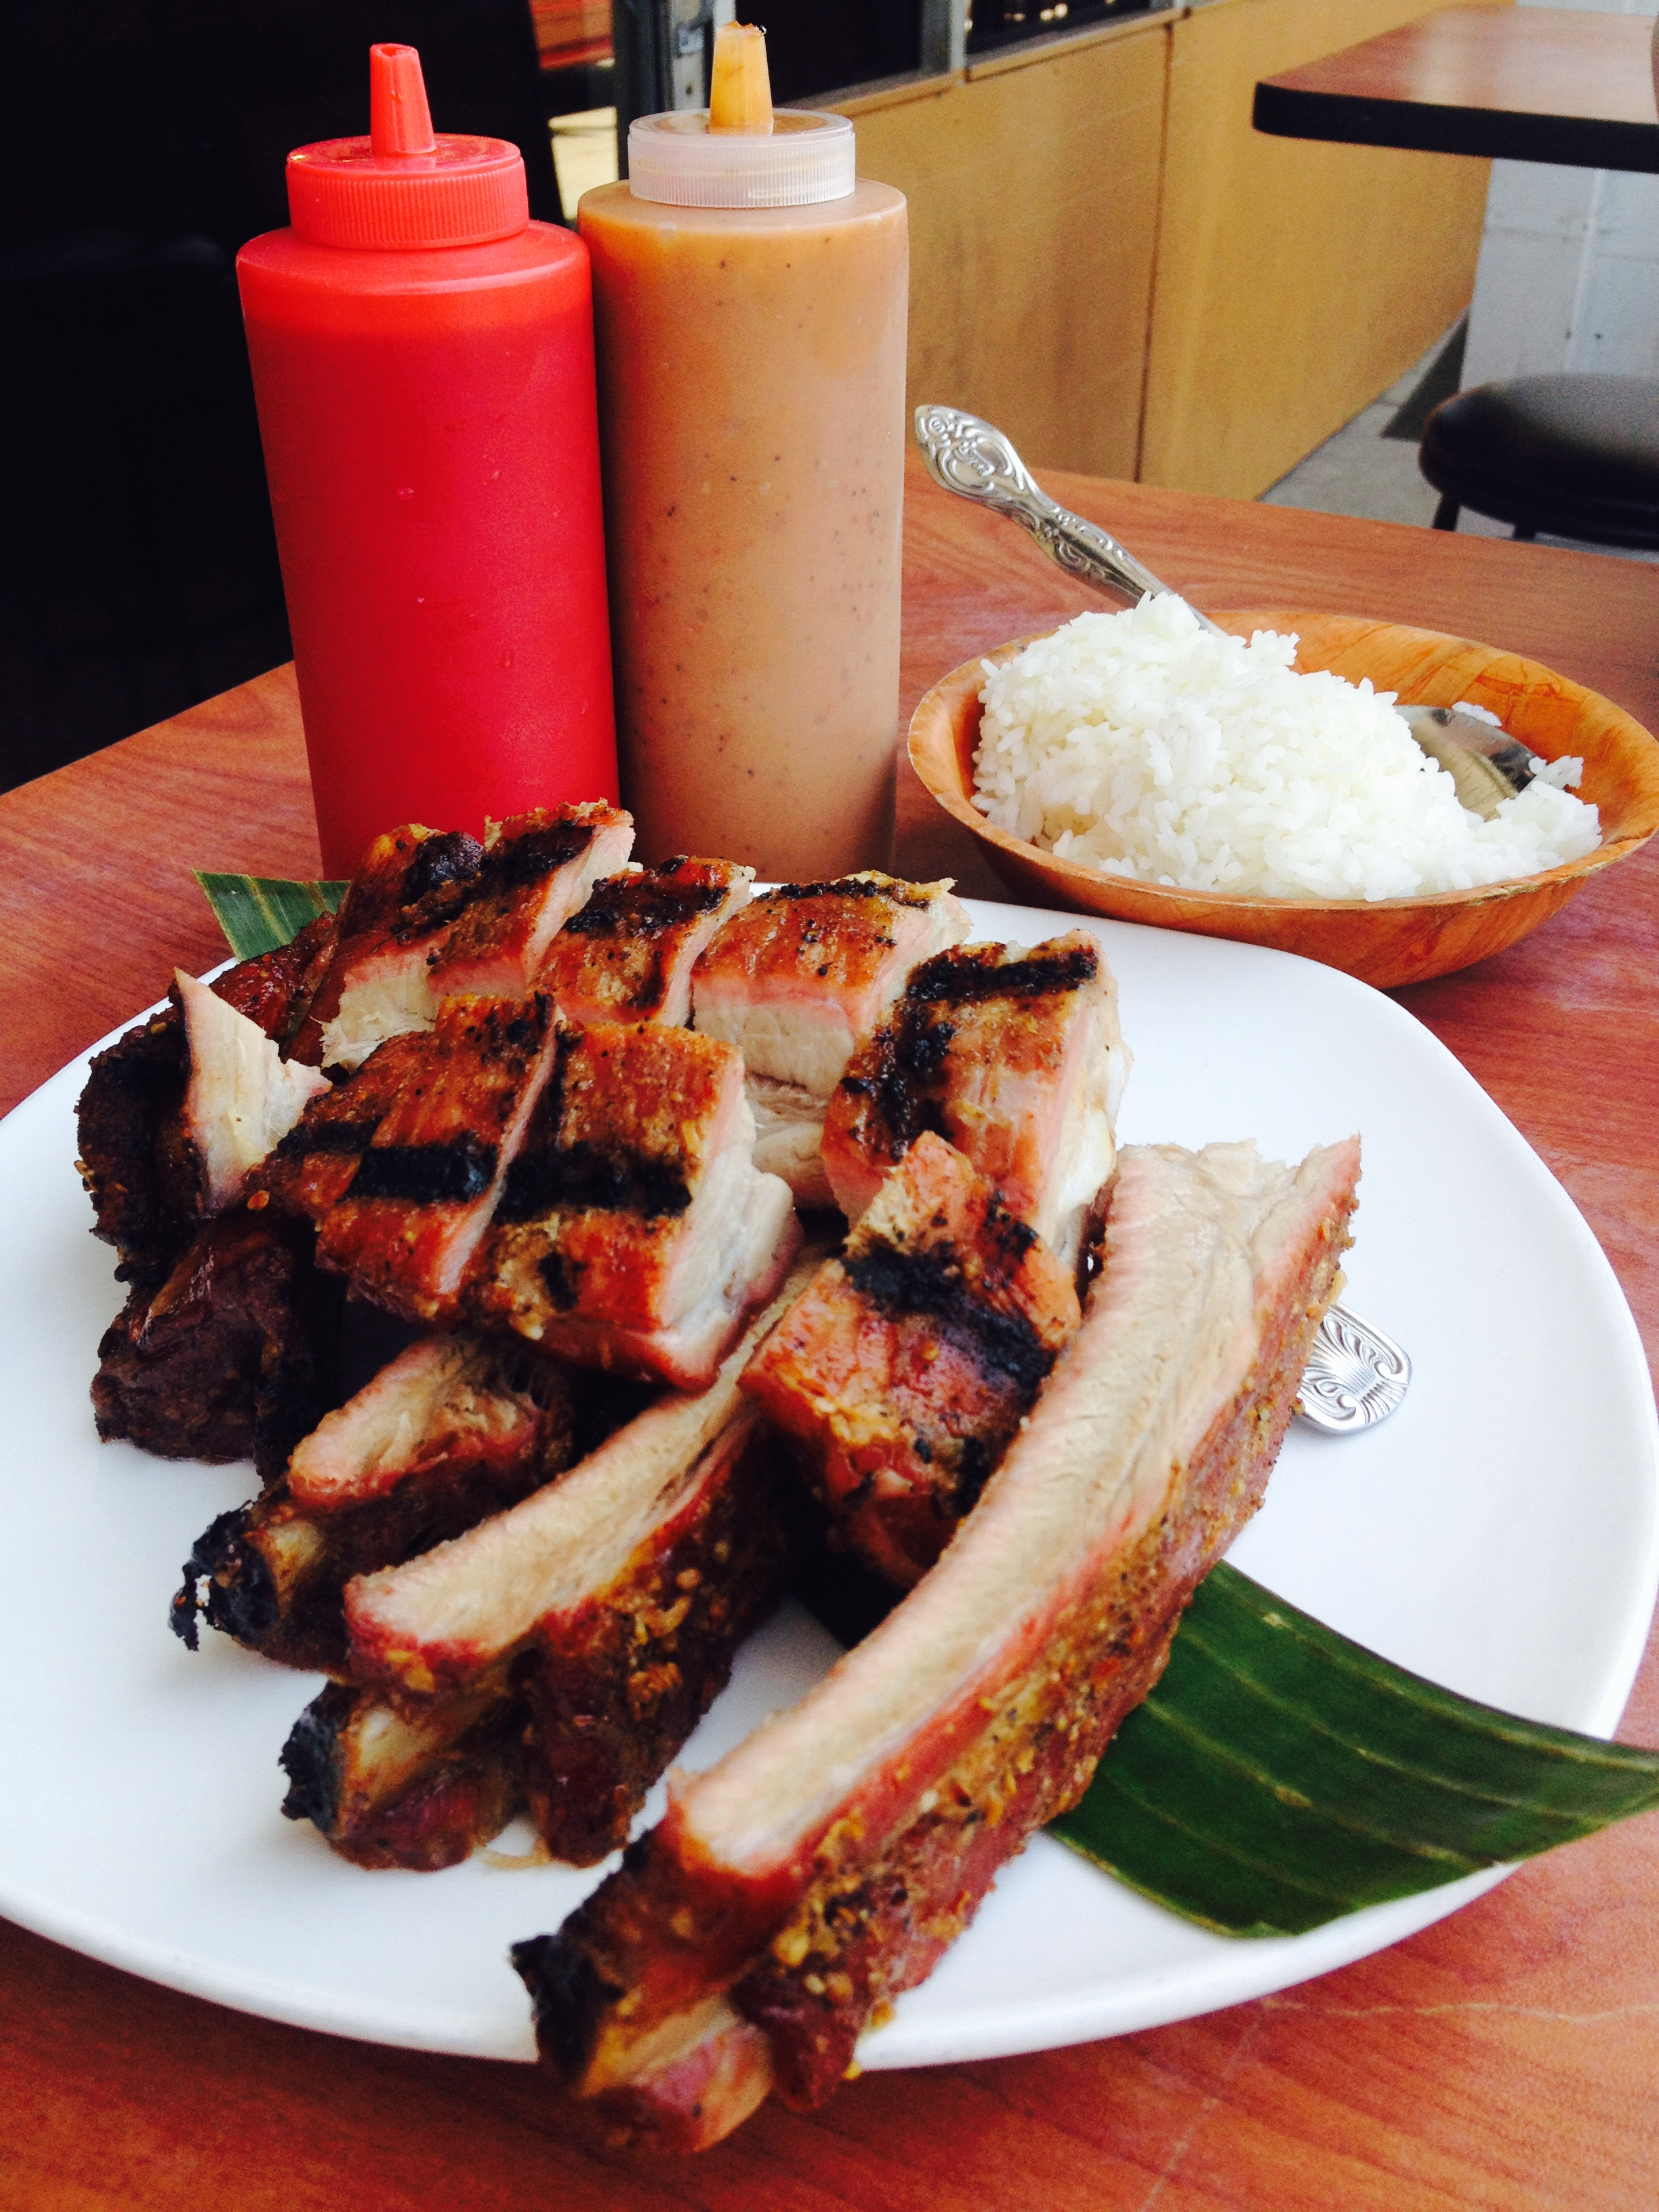 Mt. Malindang Pork Ribs & Riblets - seasoned, slow-smoked st. louis pork ribs and rib tips, accompanied by secret sauces